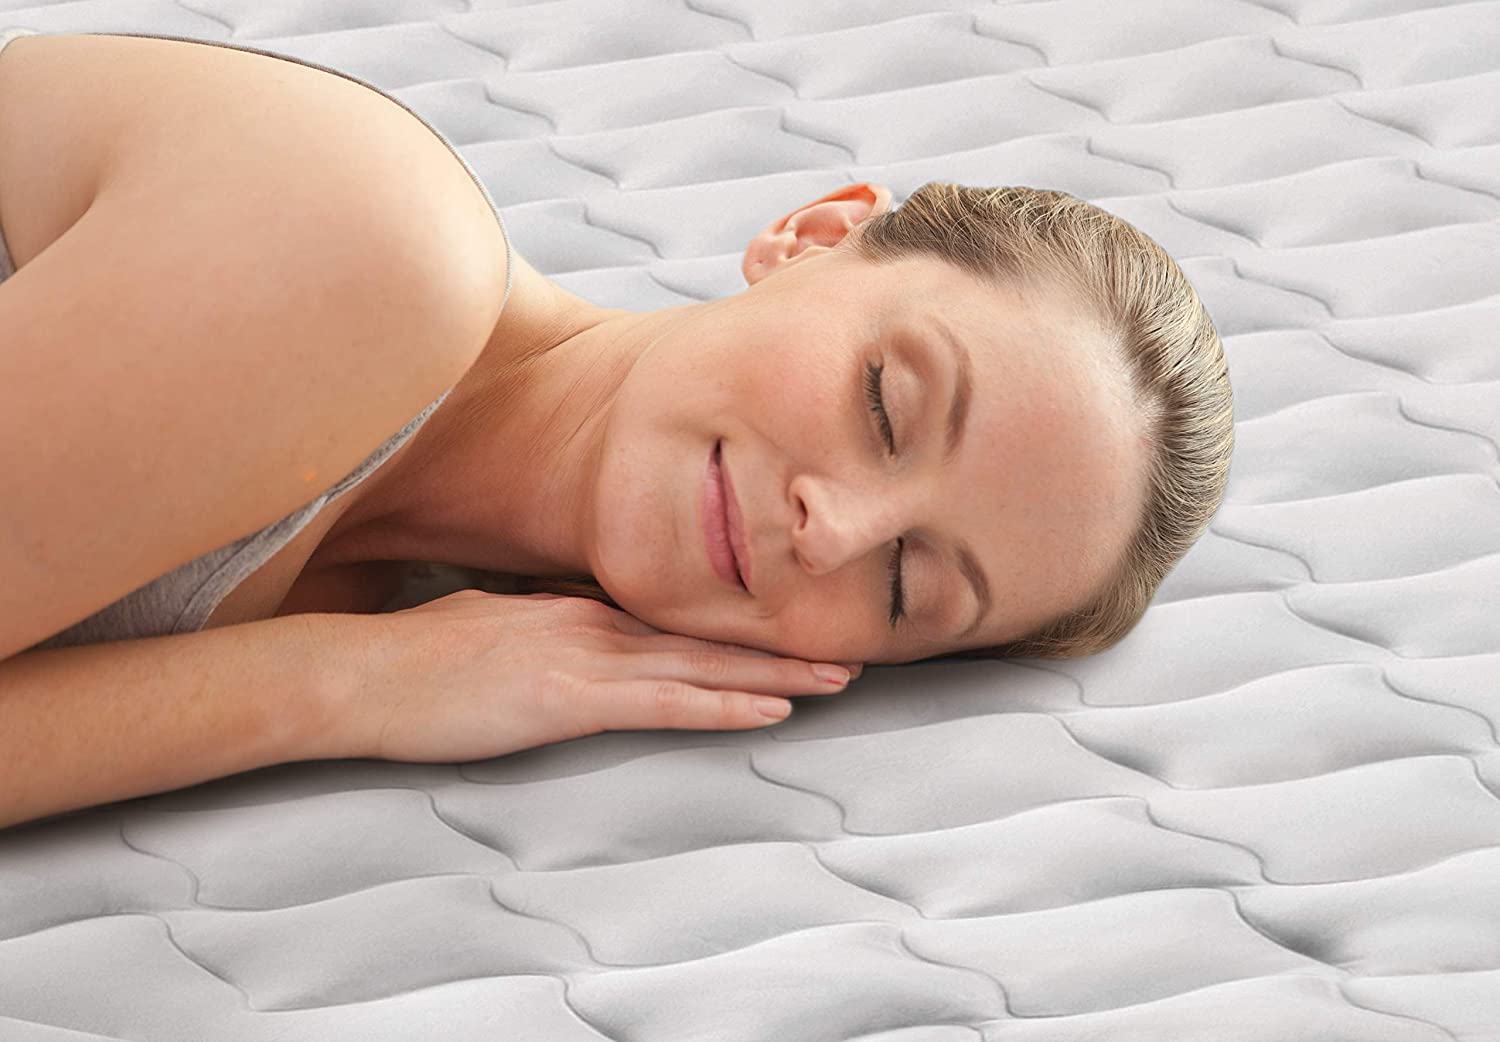 Intex   Unisex Outdoor  Air Bed available in White Single